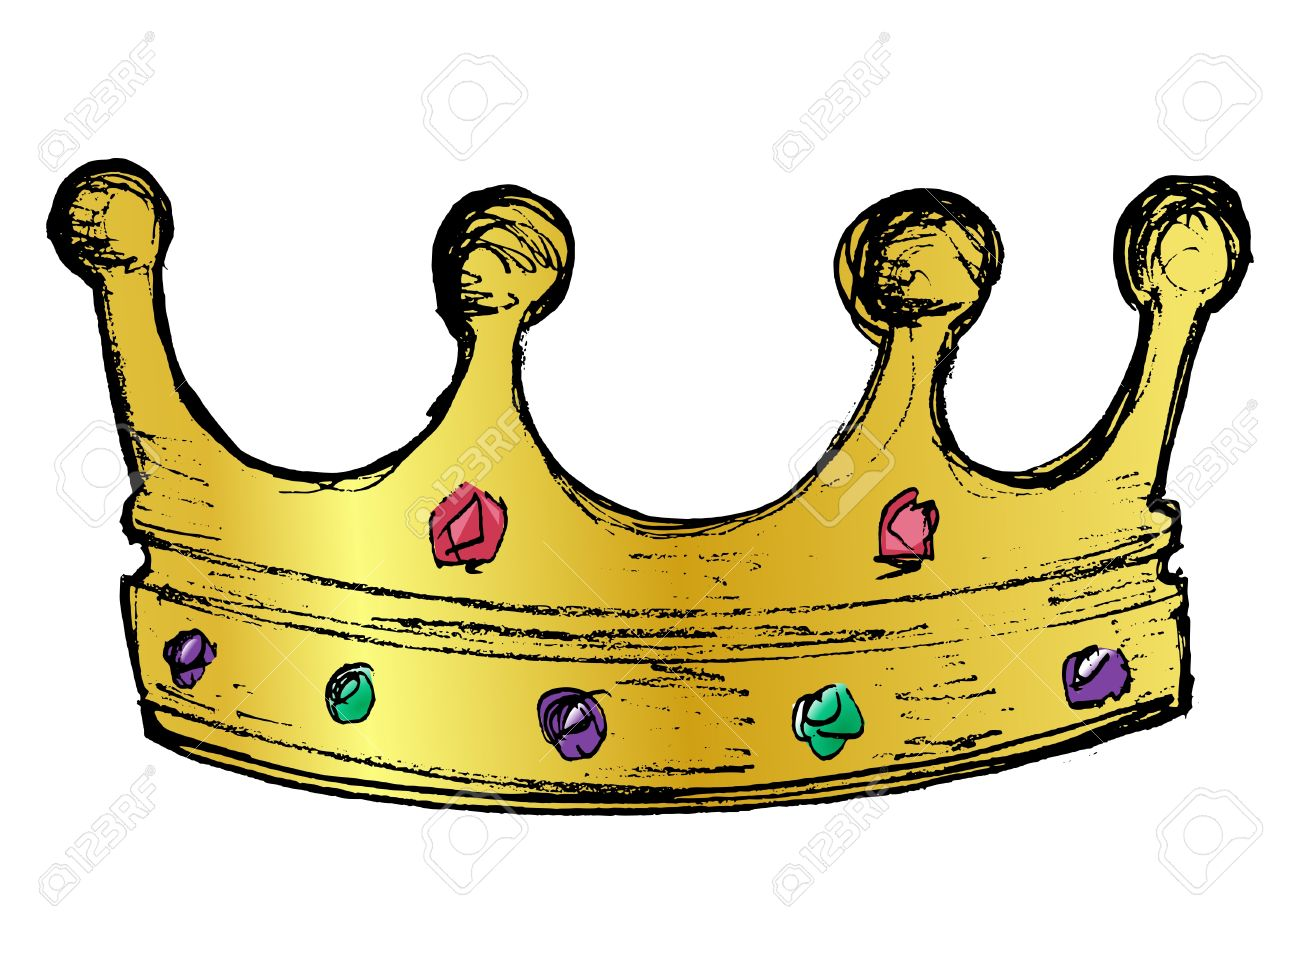 Hand Drawn Vector Sketch Illustration Of Crown Royalty Free Cliparts Vectors And Stock Illustration Image 17724225 Learn how to draw cartoon crown pictures using these outlines or print 3,929 cartoon royal. hand drawn vector sketch illustration of crown